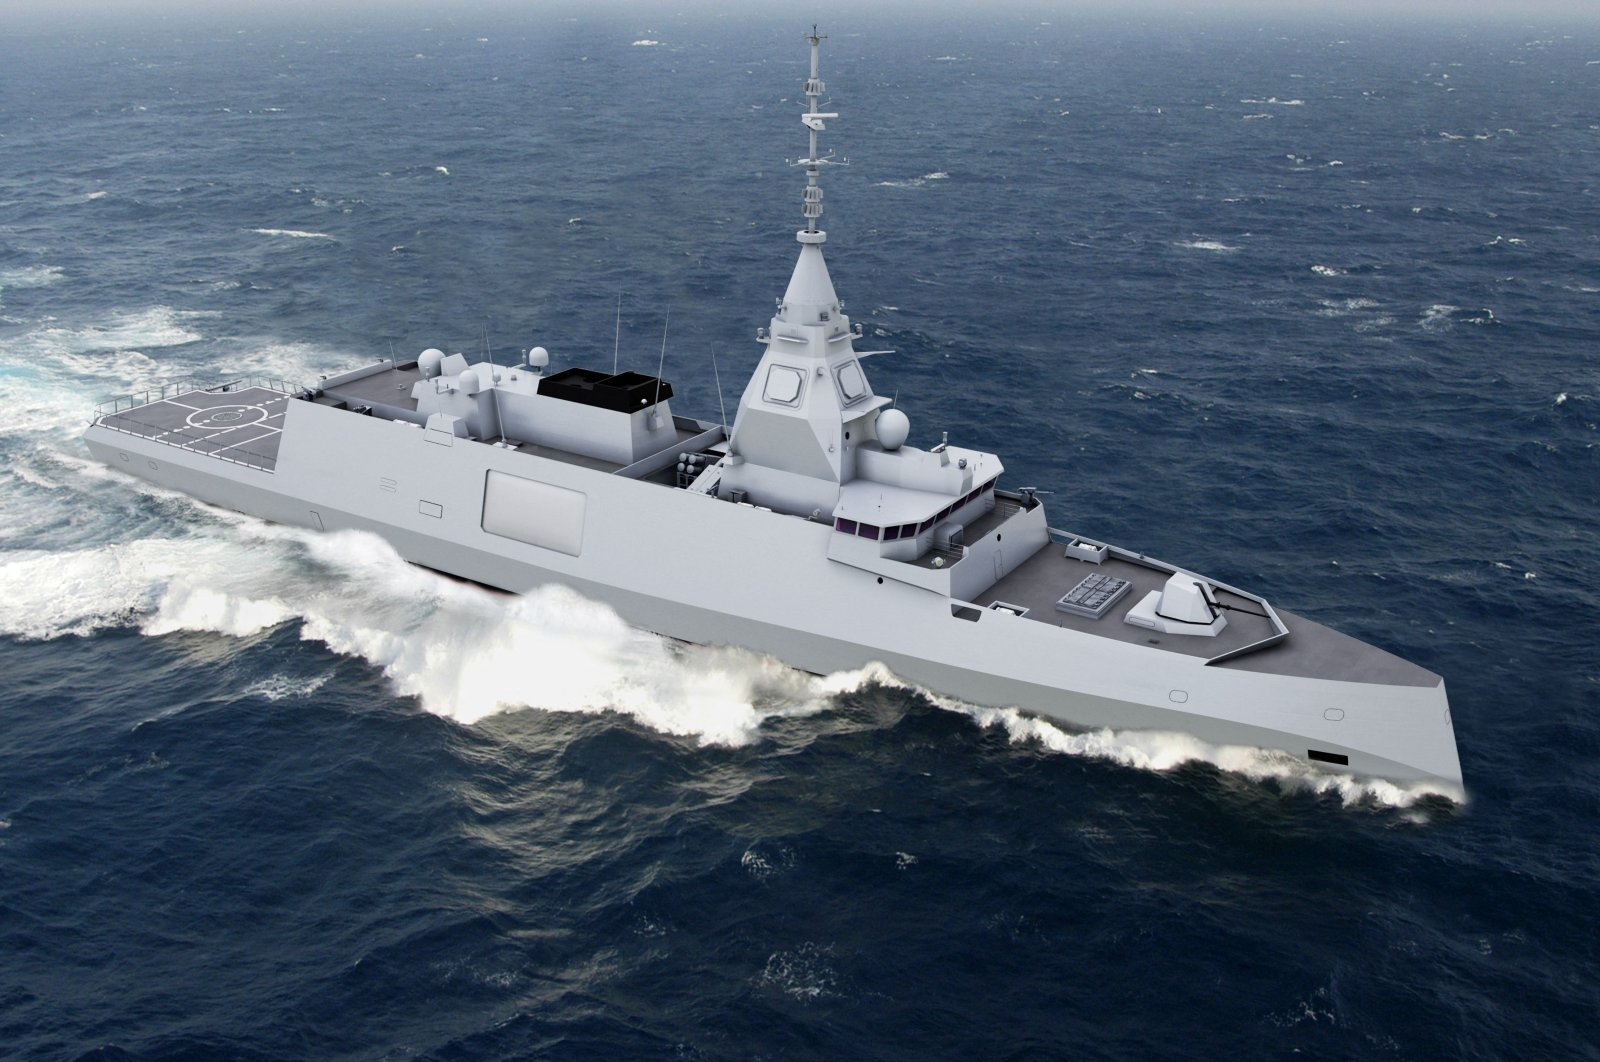 This handout image received from French Naval defense and energy group DCNS on Oct. 18, 2016, shows an artists impression of a proposed new-generation 4000-ton digital frigate called the Belharra. (AFP Photo)